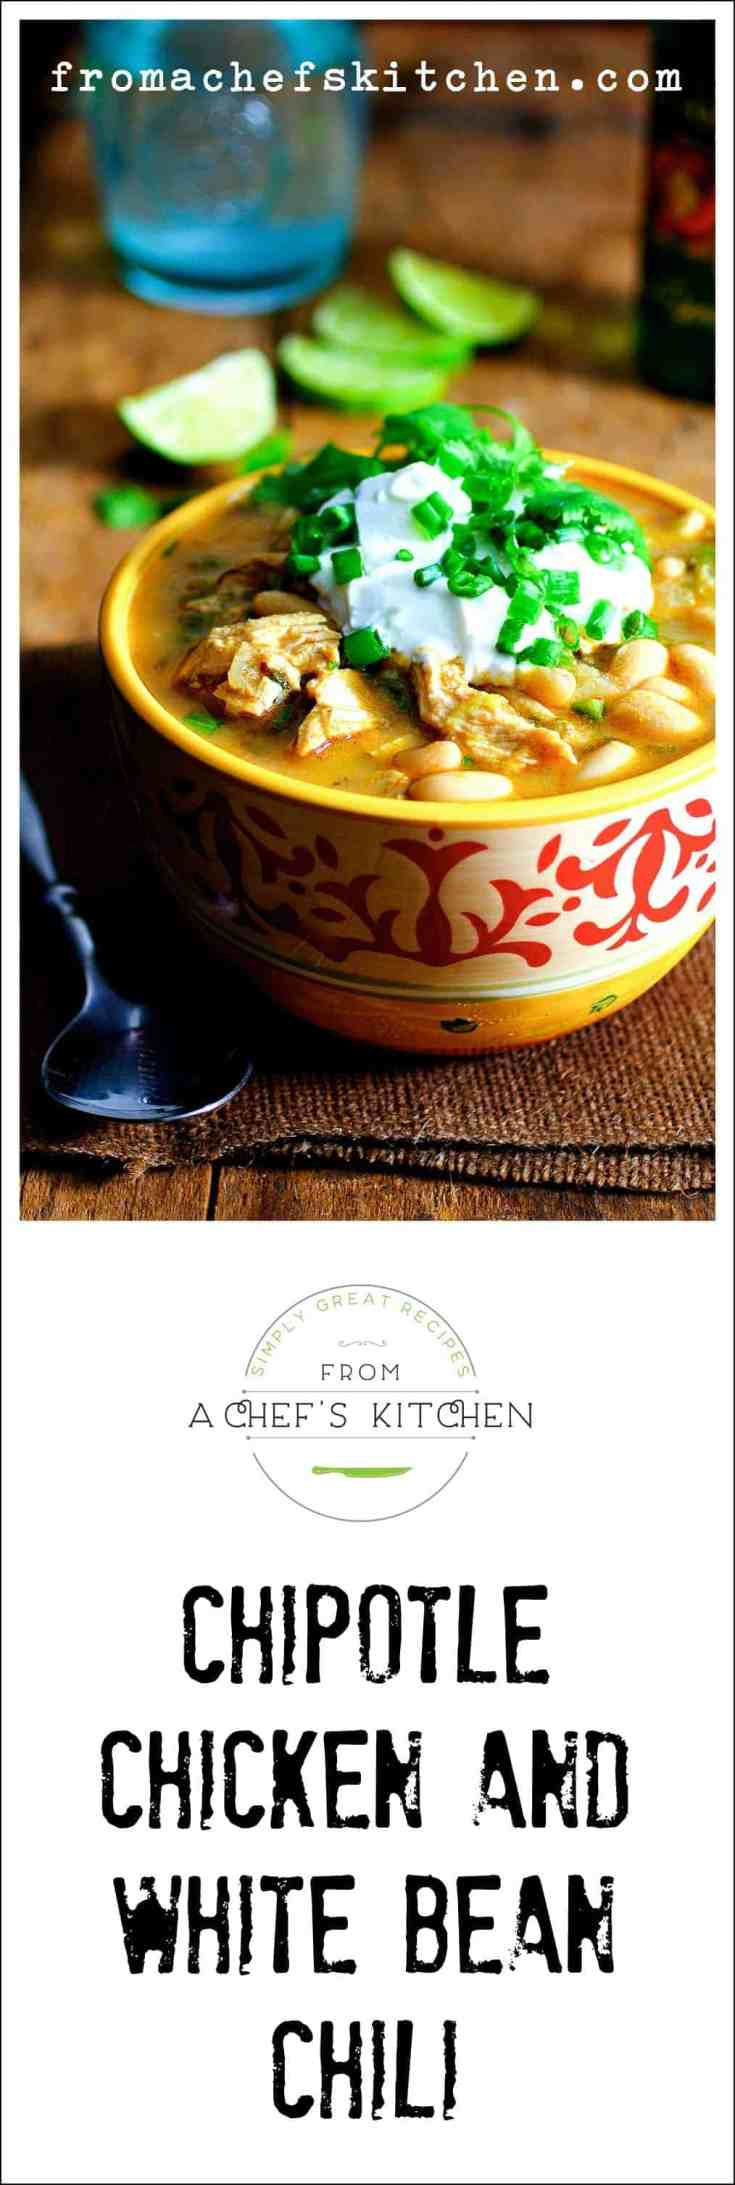 Chipotle Chicken and White Bean Chili packs a lot of flavor for not a lot of labor! Take a pot of this to a football get-together and it will be the hit of the party! #chili #chickenchili #chipotlechicken #soup #stew #whitebean #southwesternfood #Mexicanfood